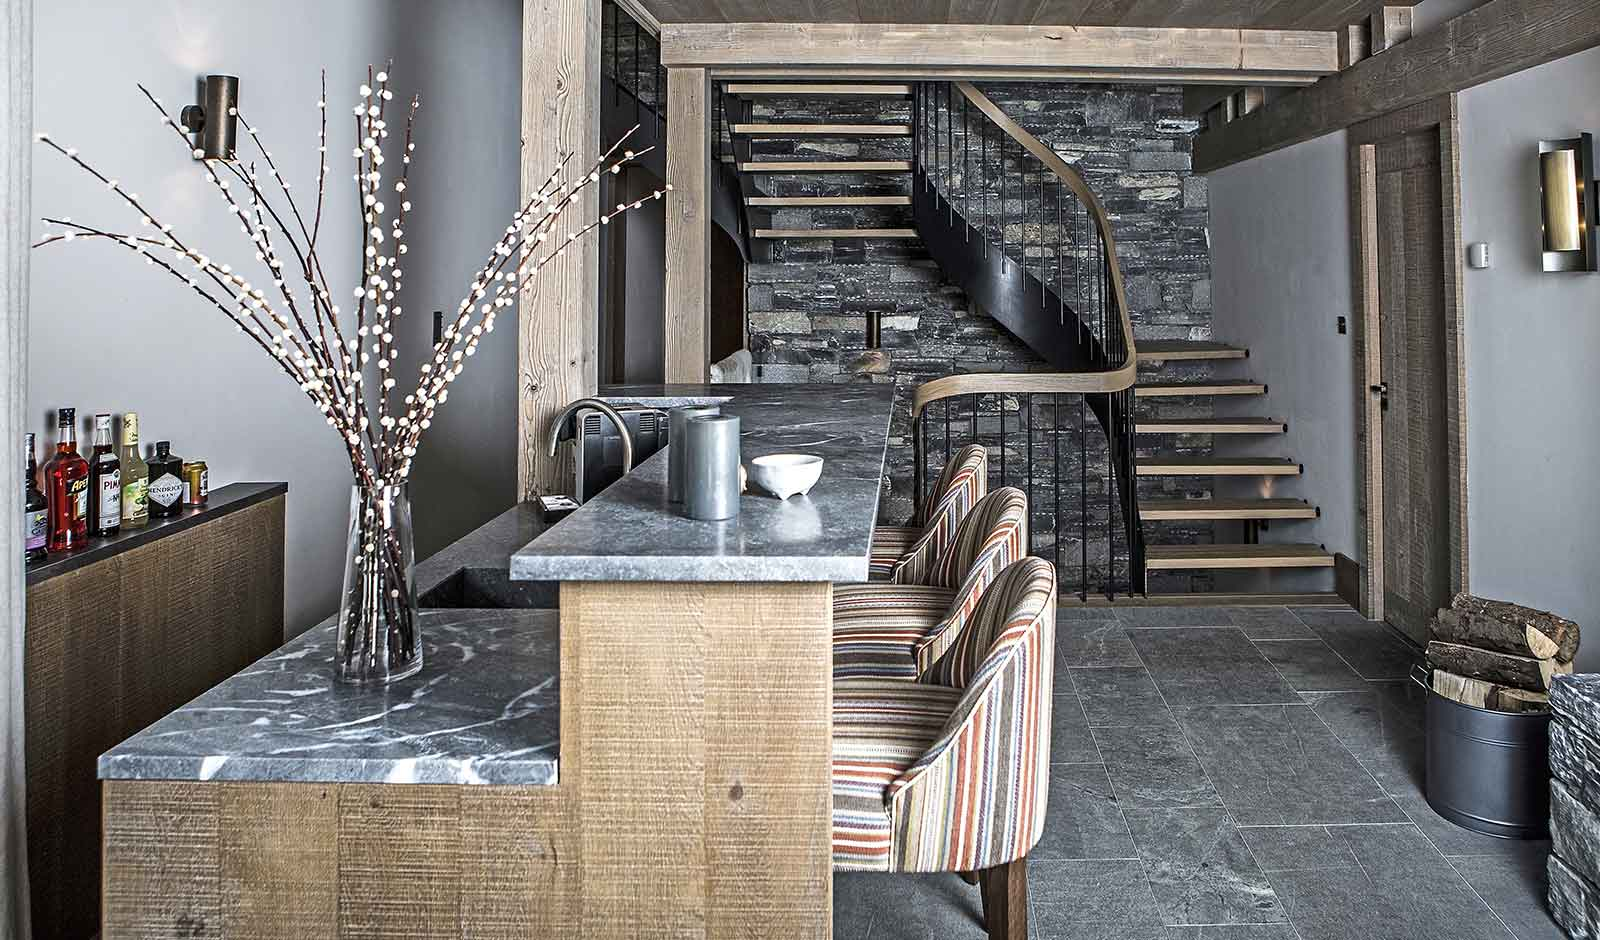 chalet-alpaca-11-atelier-crea-and-co-architecte-design-project-manager-meribel-savoie